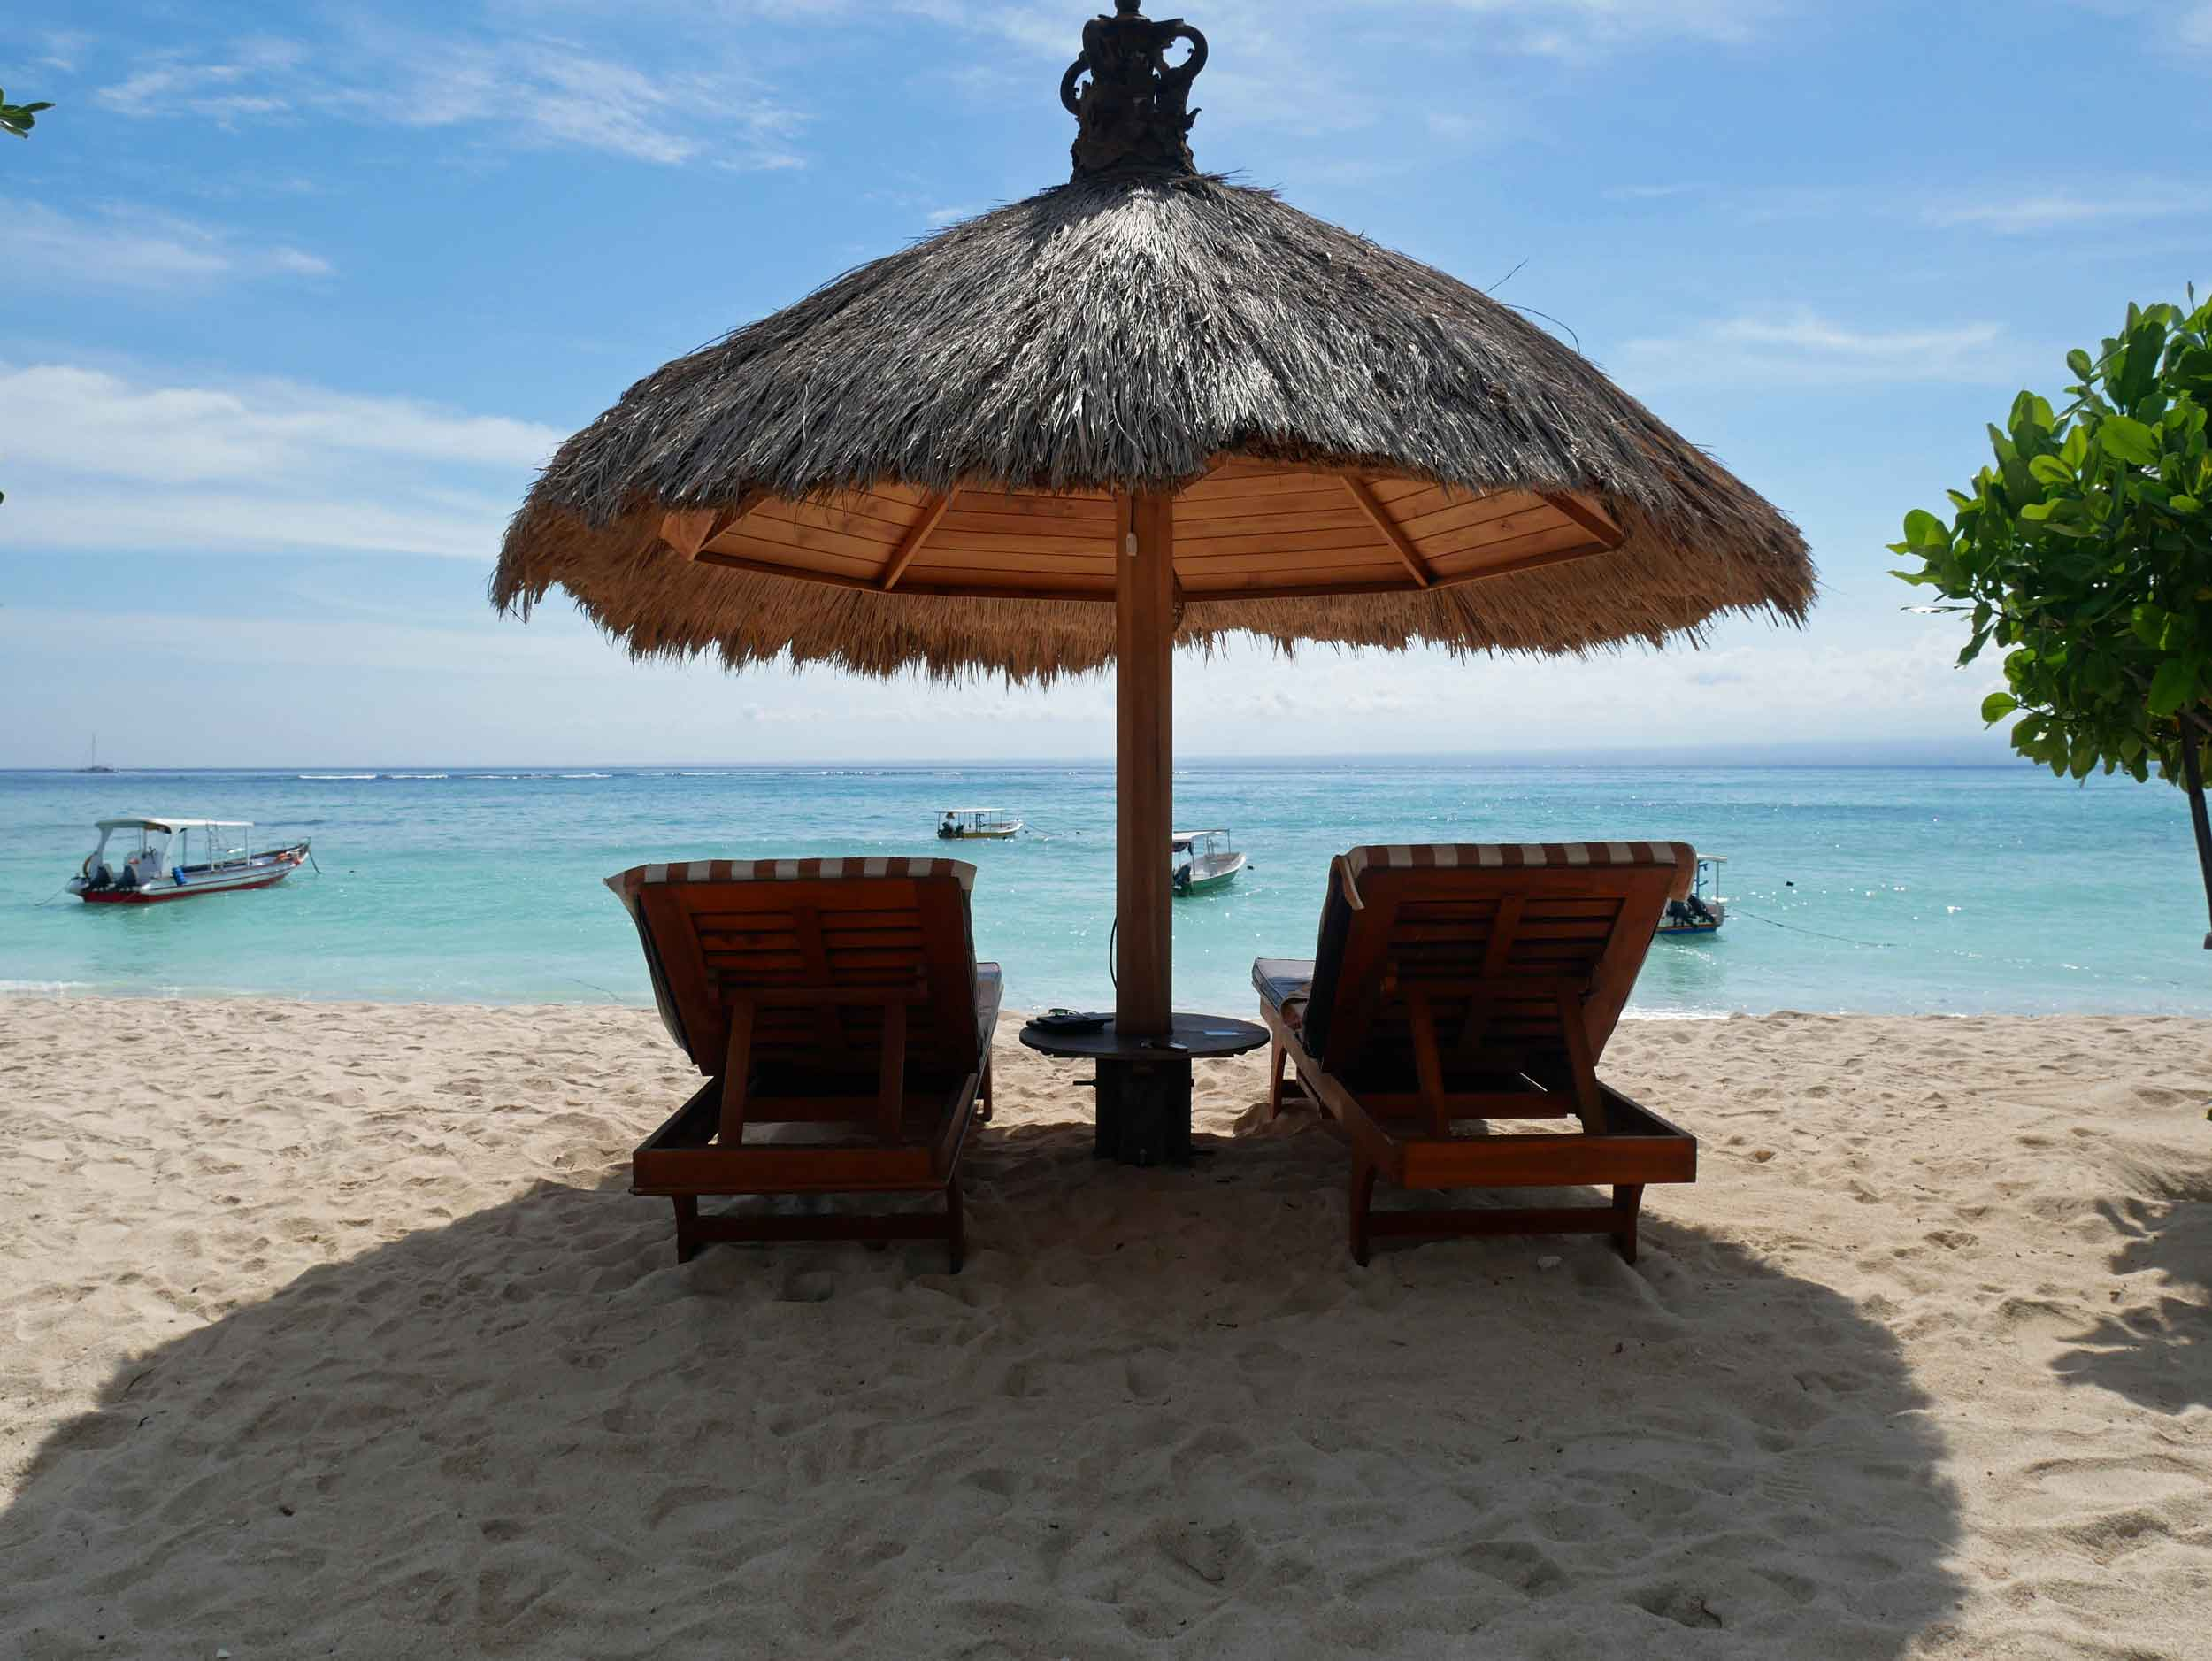 We planted ourselves under this straw umbrella on Lembongan's Pemedal Beach.